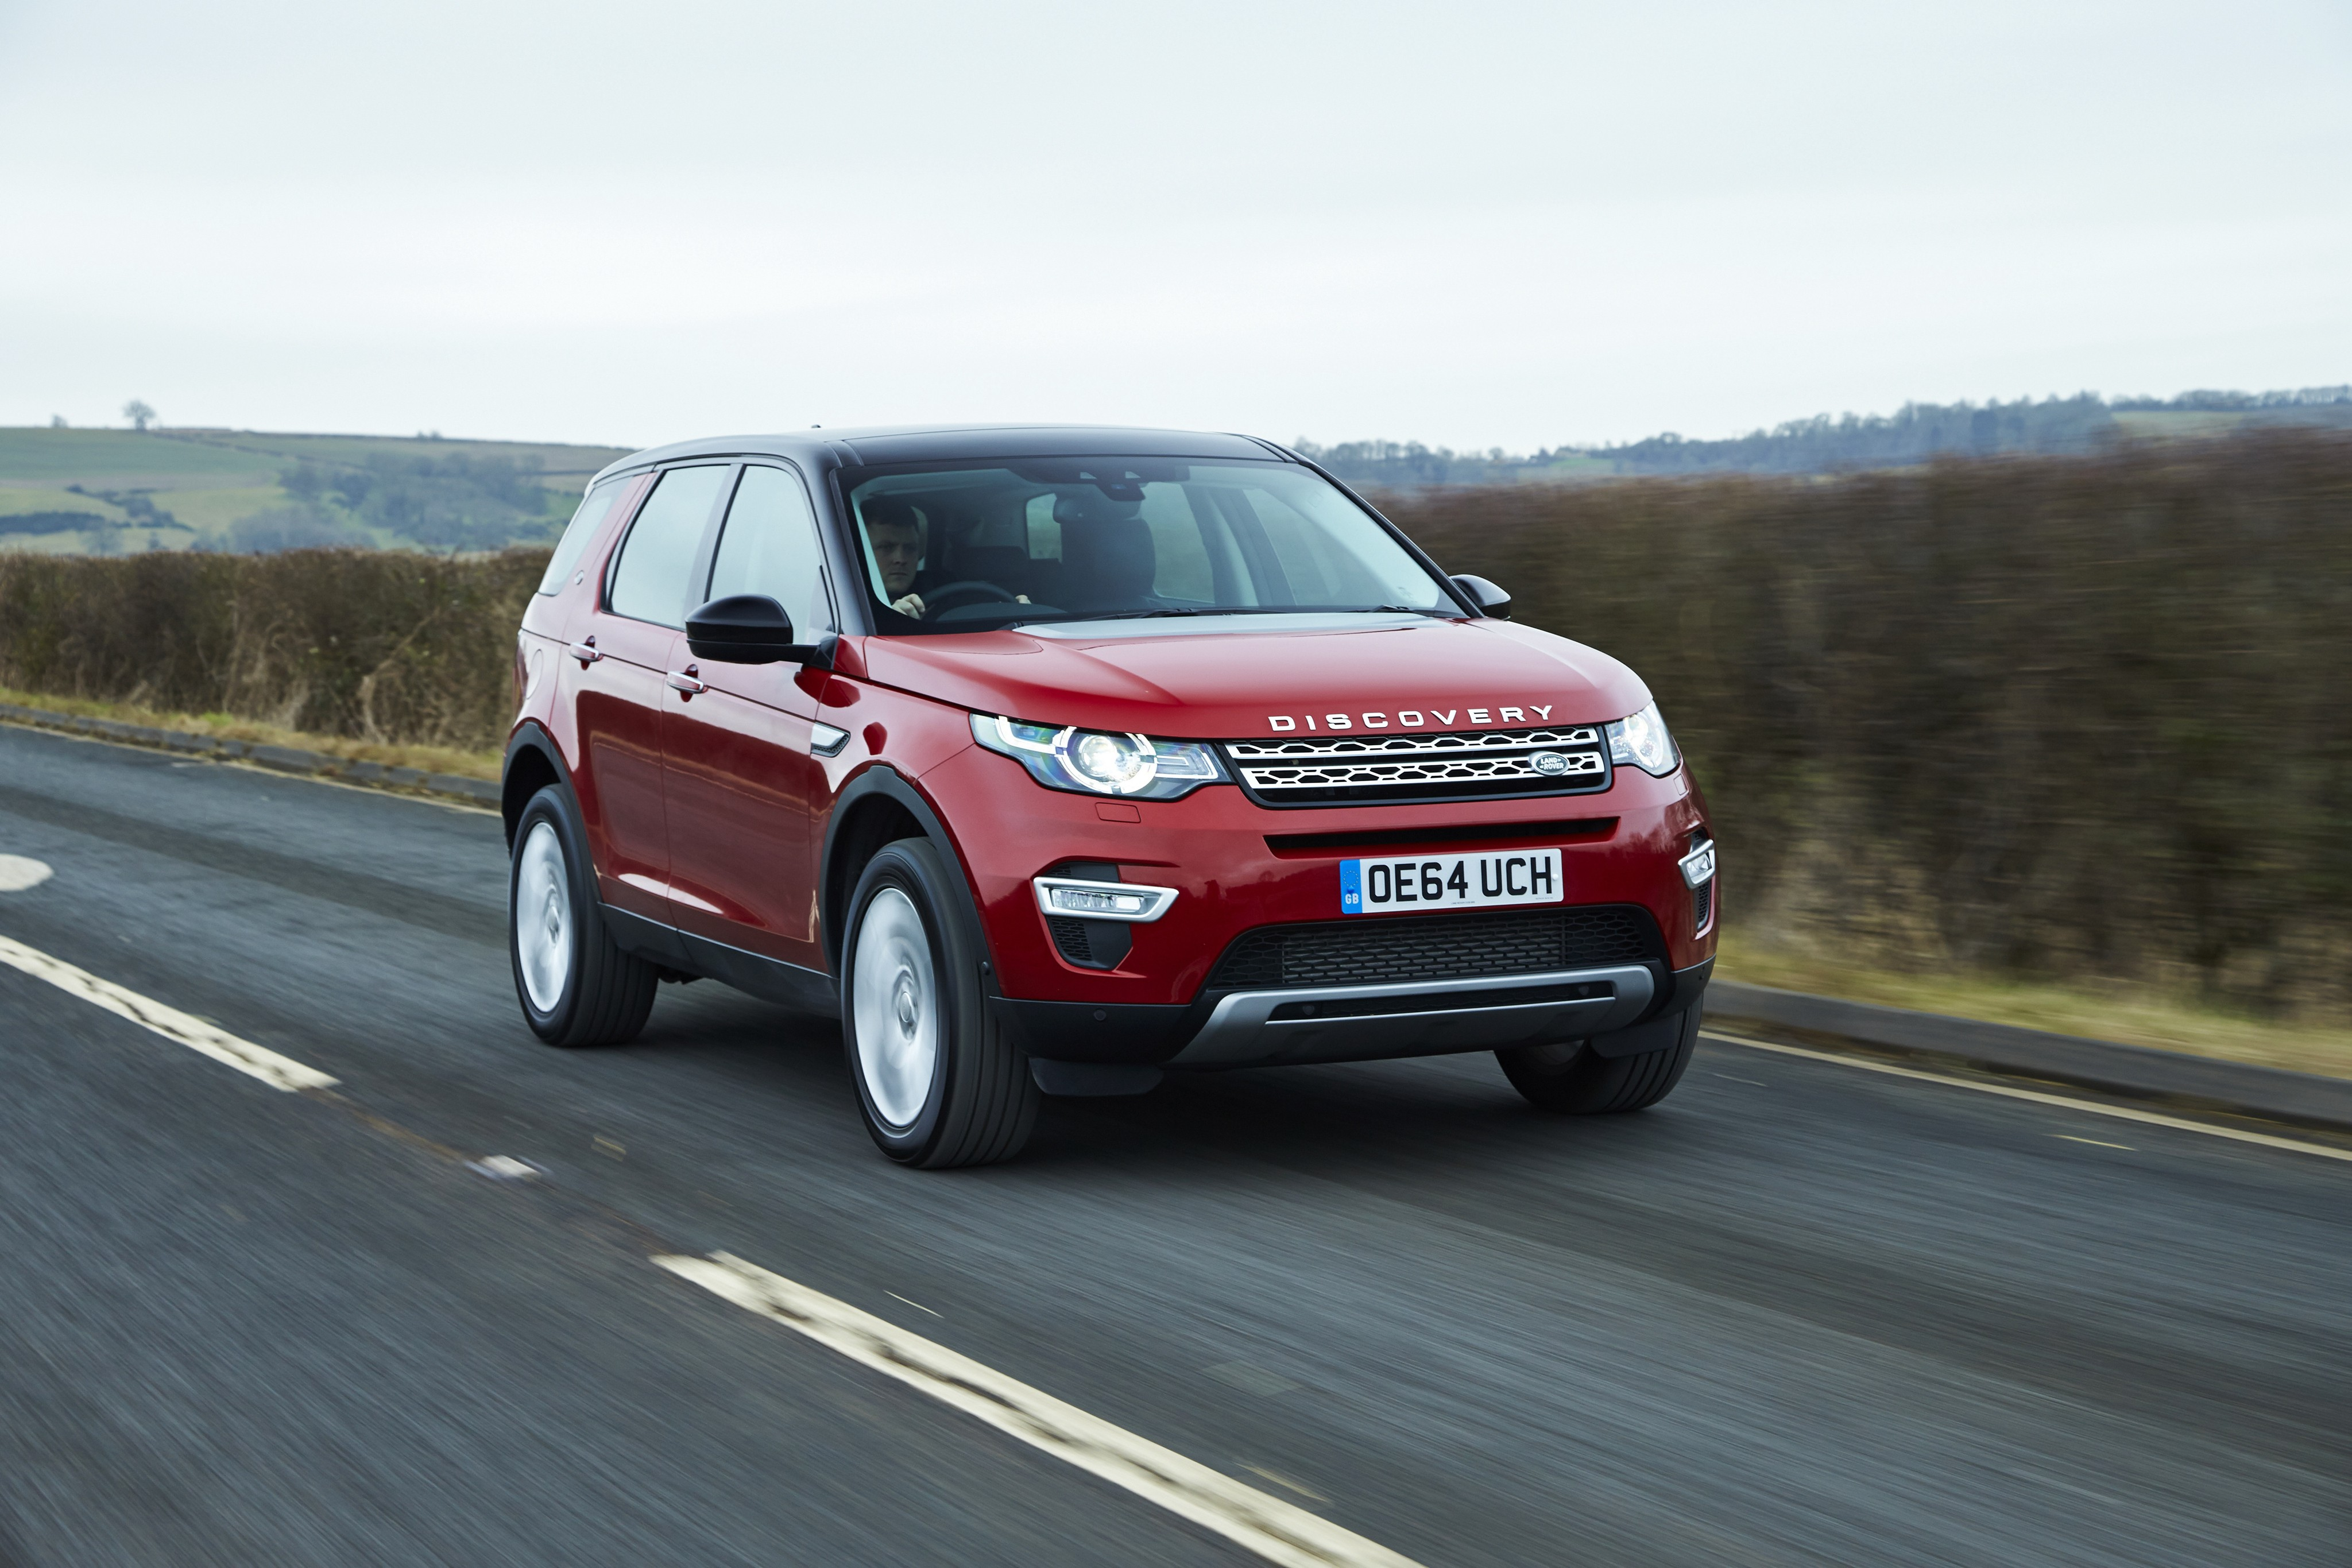 land rover discovery sport specs 2014 2015 2016 2017. Black Bedroom Furniture Sets. Home Design Ideas